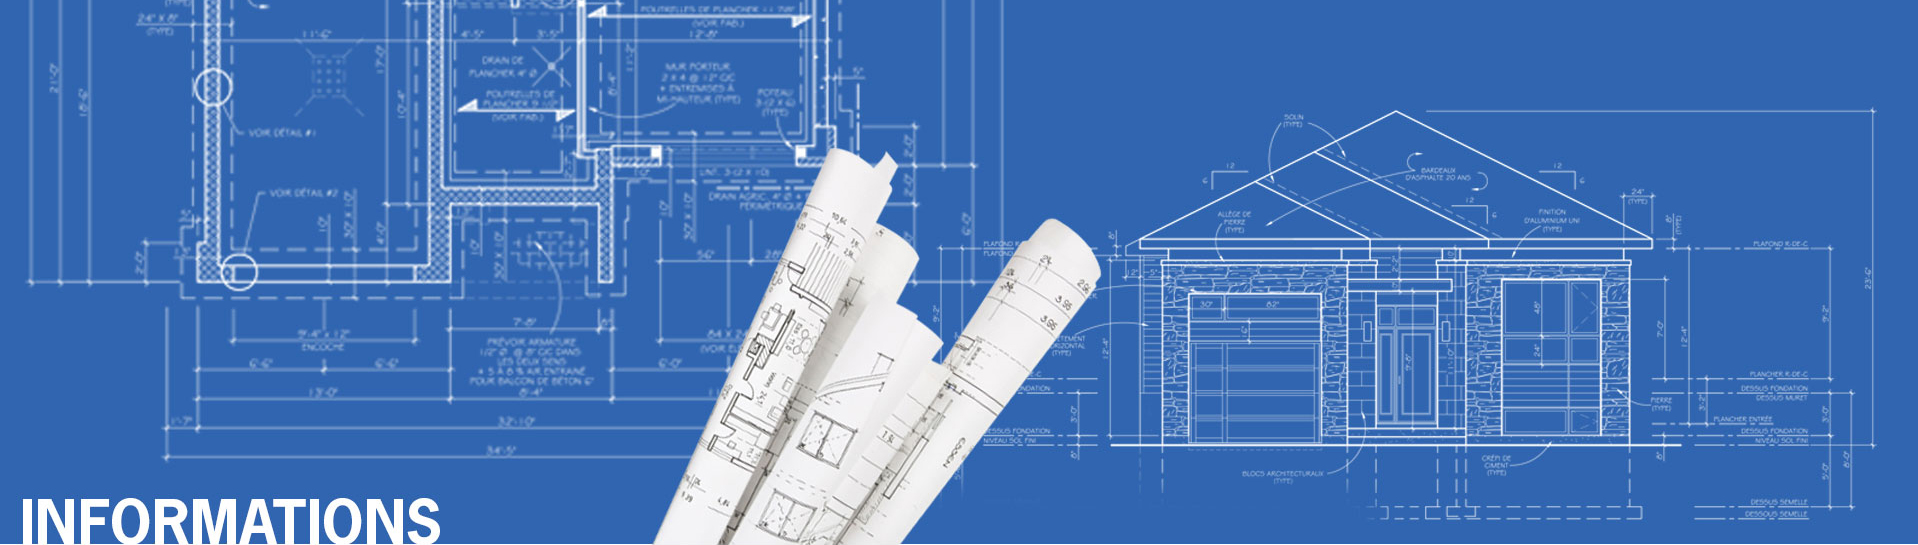 How Do You Get A Copy Of Your House Plans